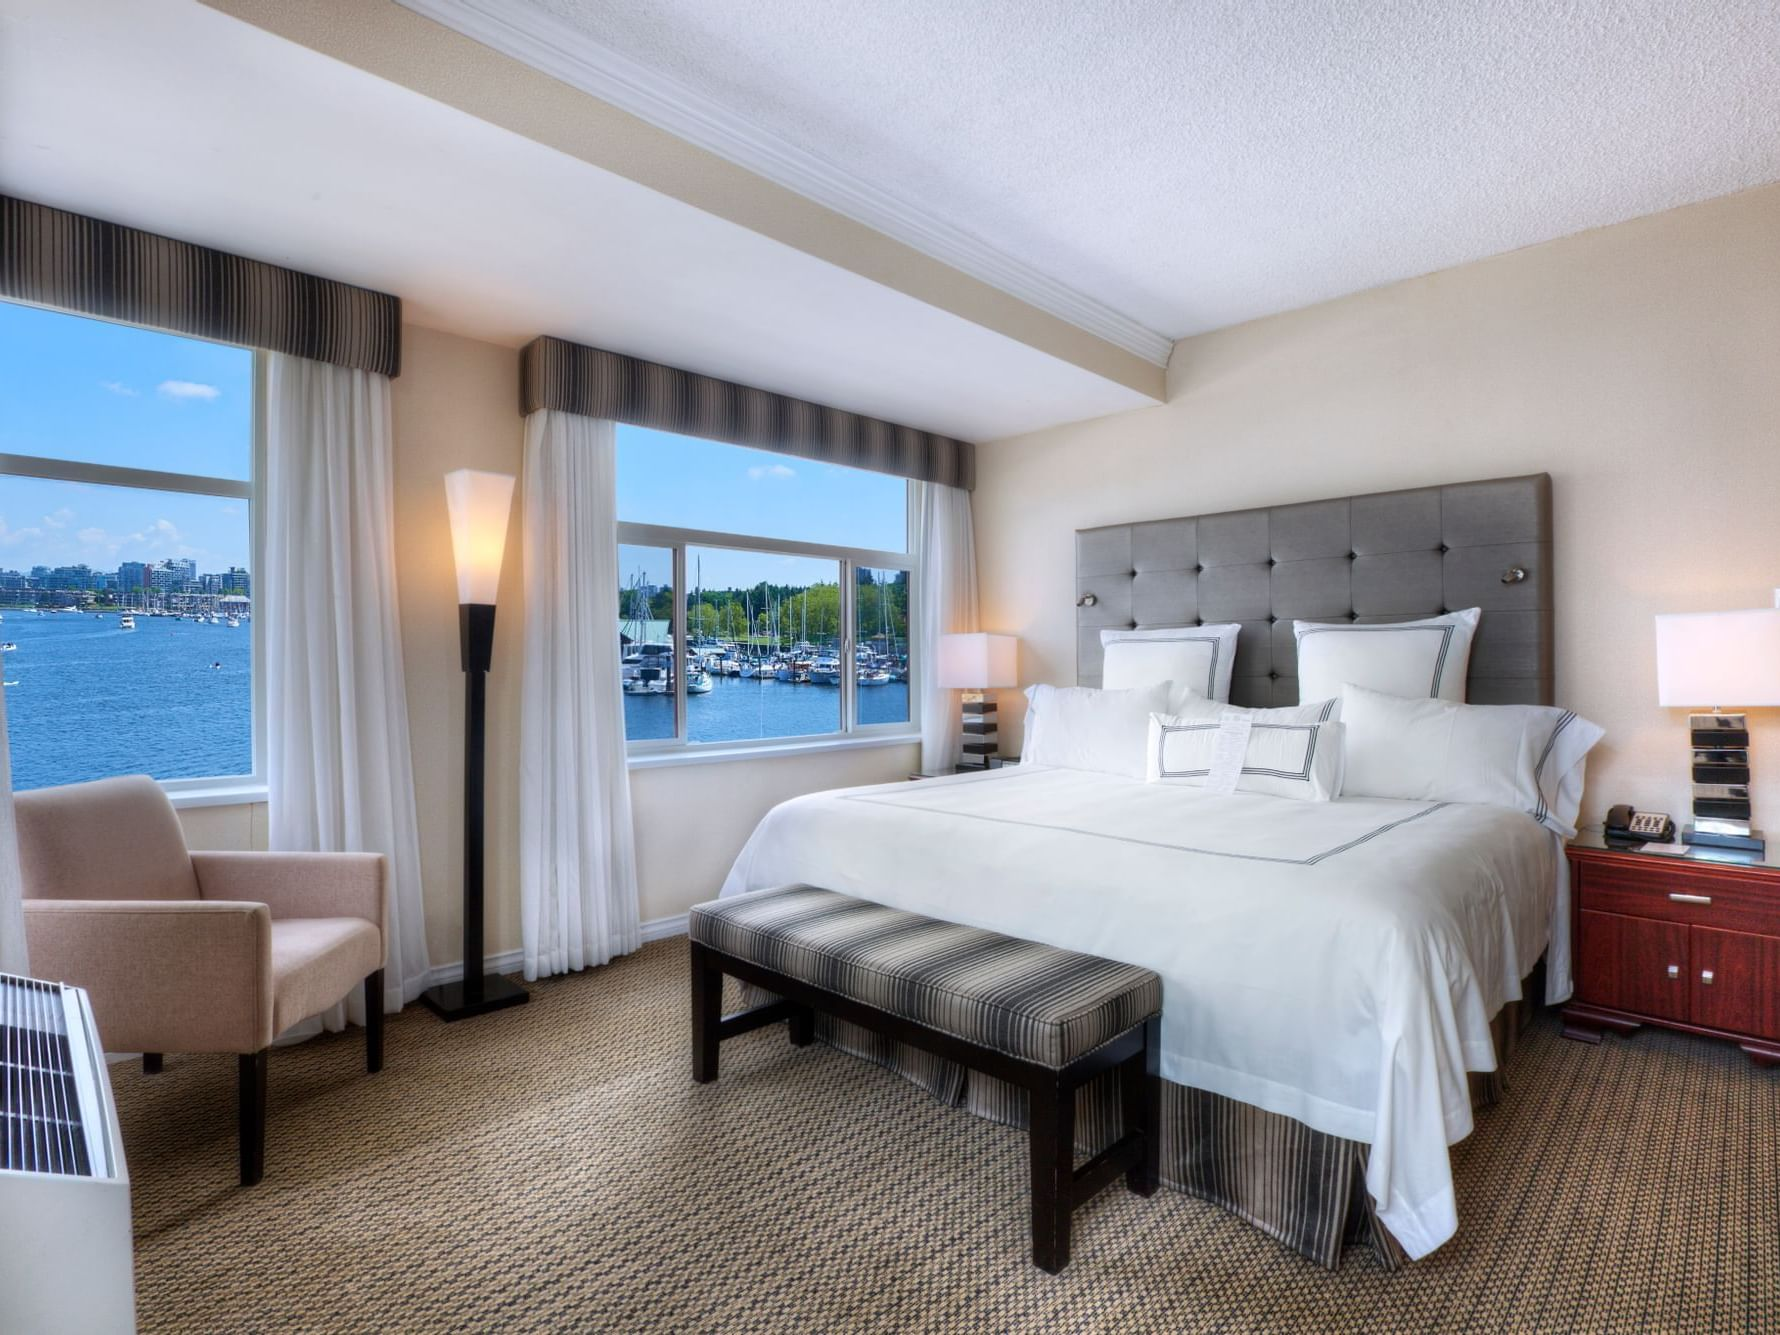 Superior Waterfront Rooms bedroom at Granville Island Hotel